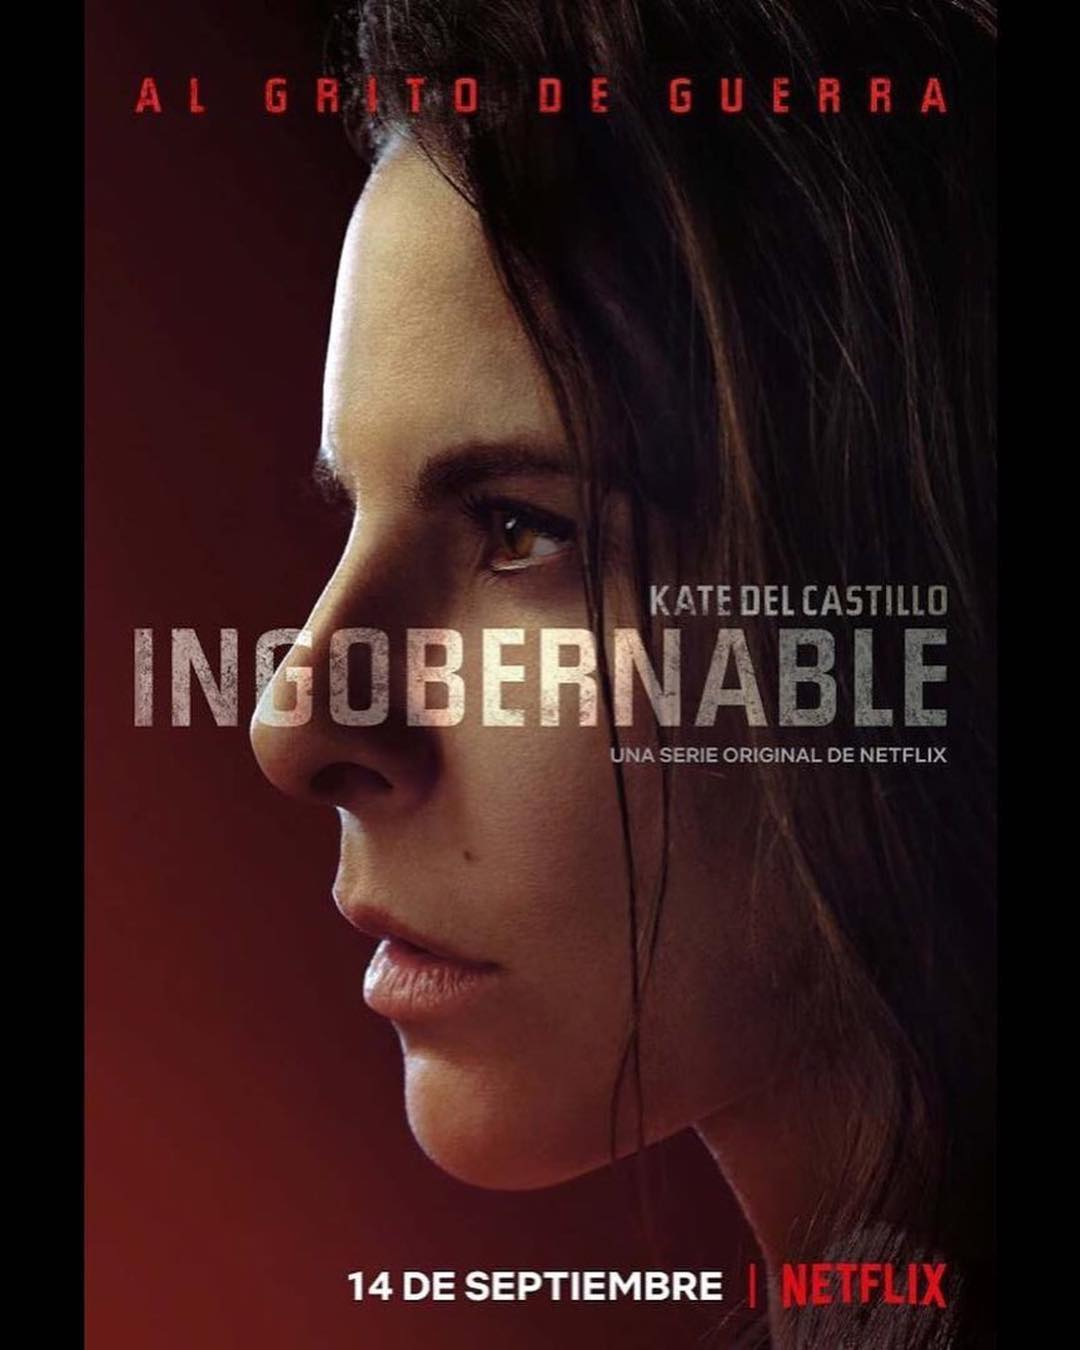 Ingobernable 2018 Temporada 2 Completa Latino 1080 Zippy